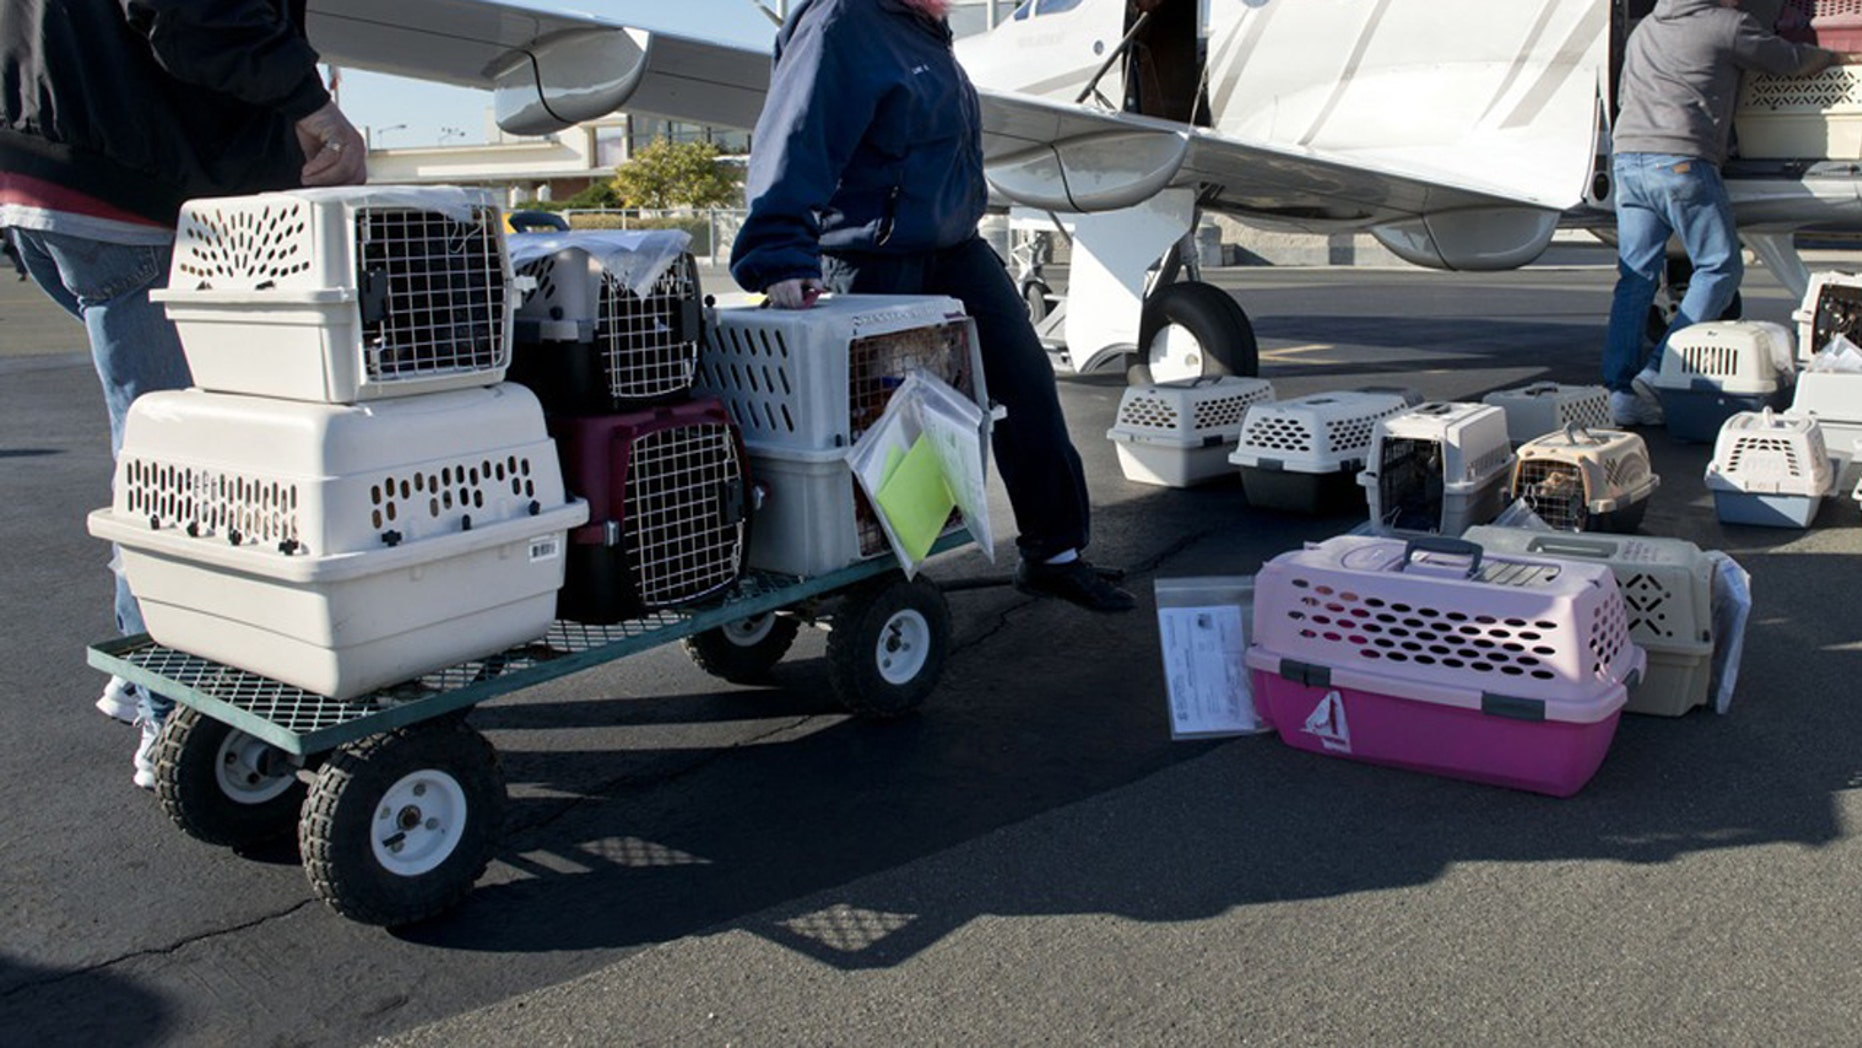 Crated animals will no longer be able to fly as checked luggage on Delta next year.